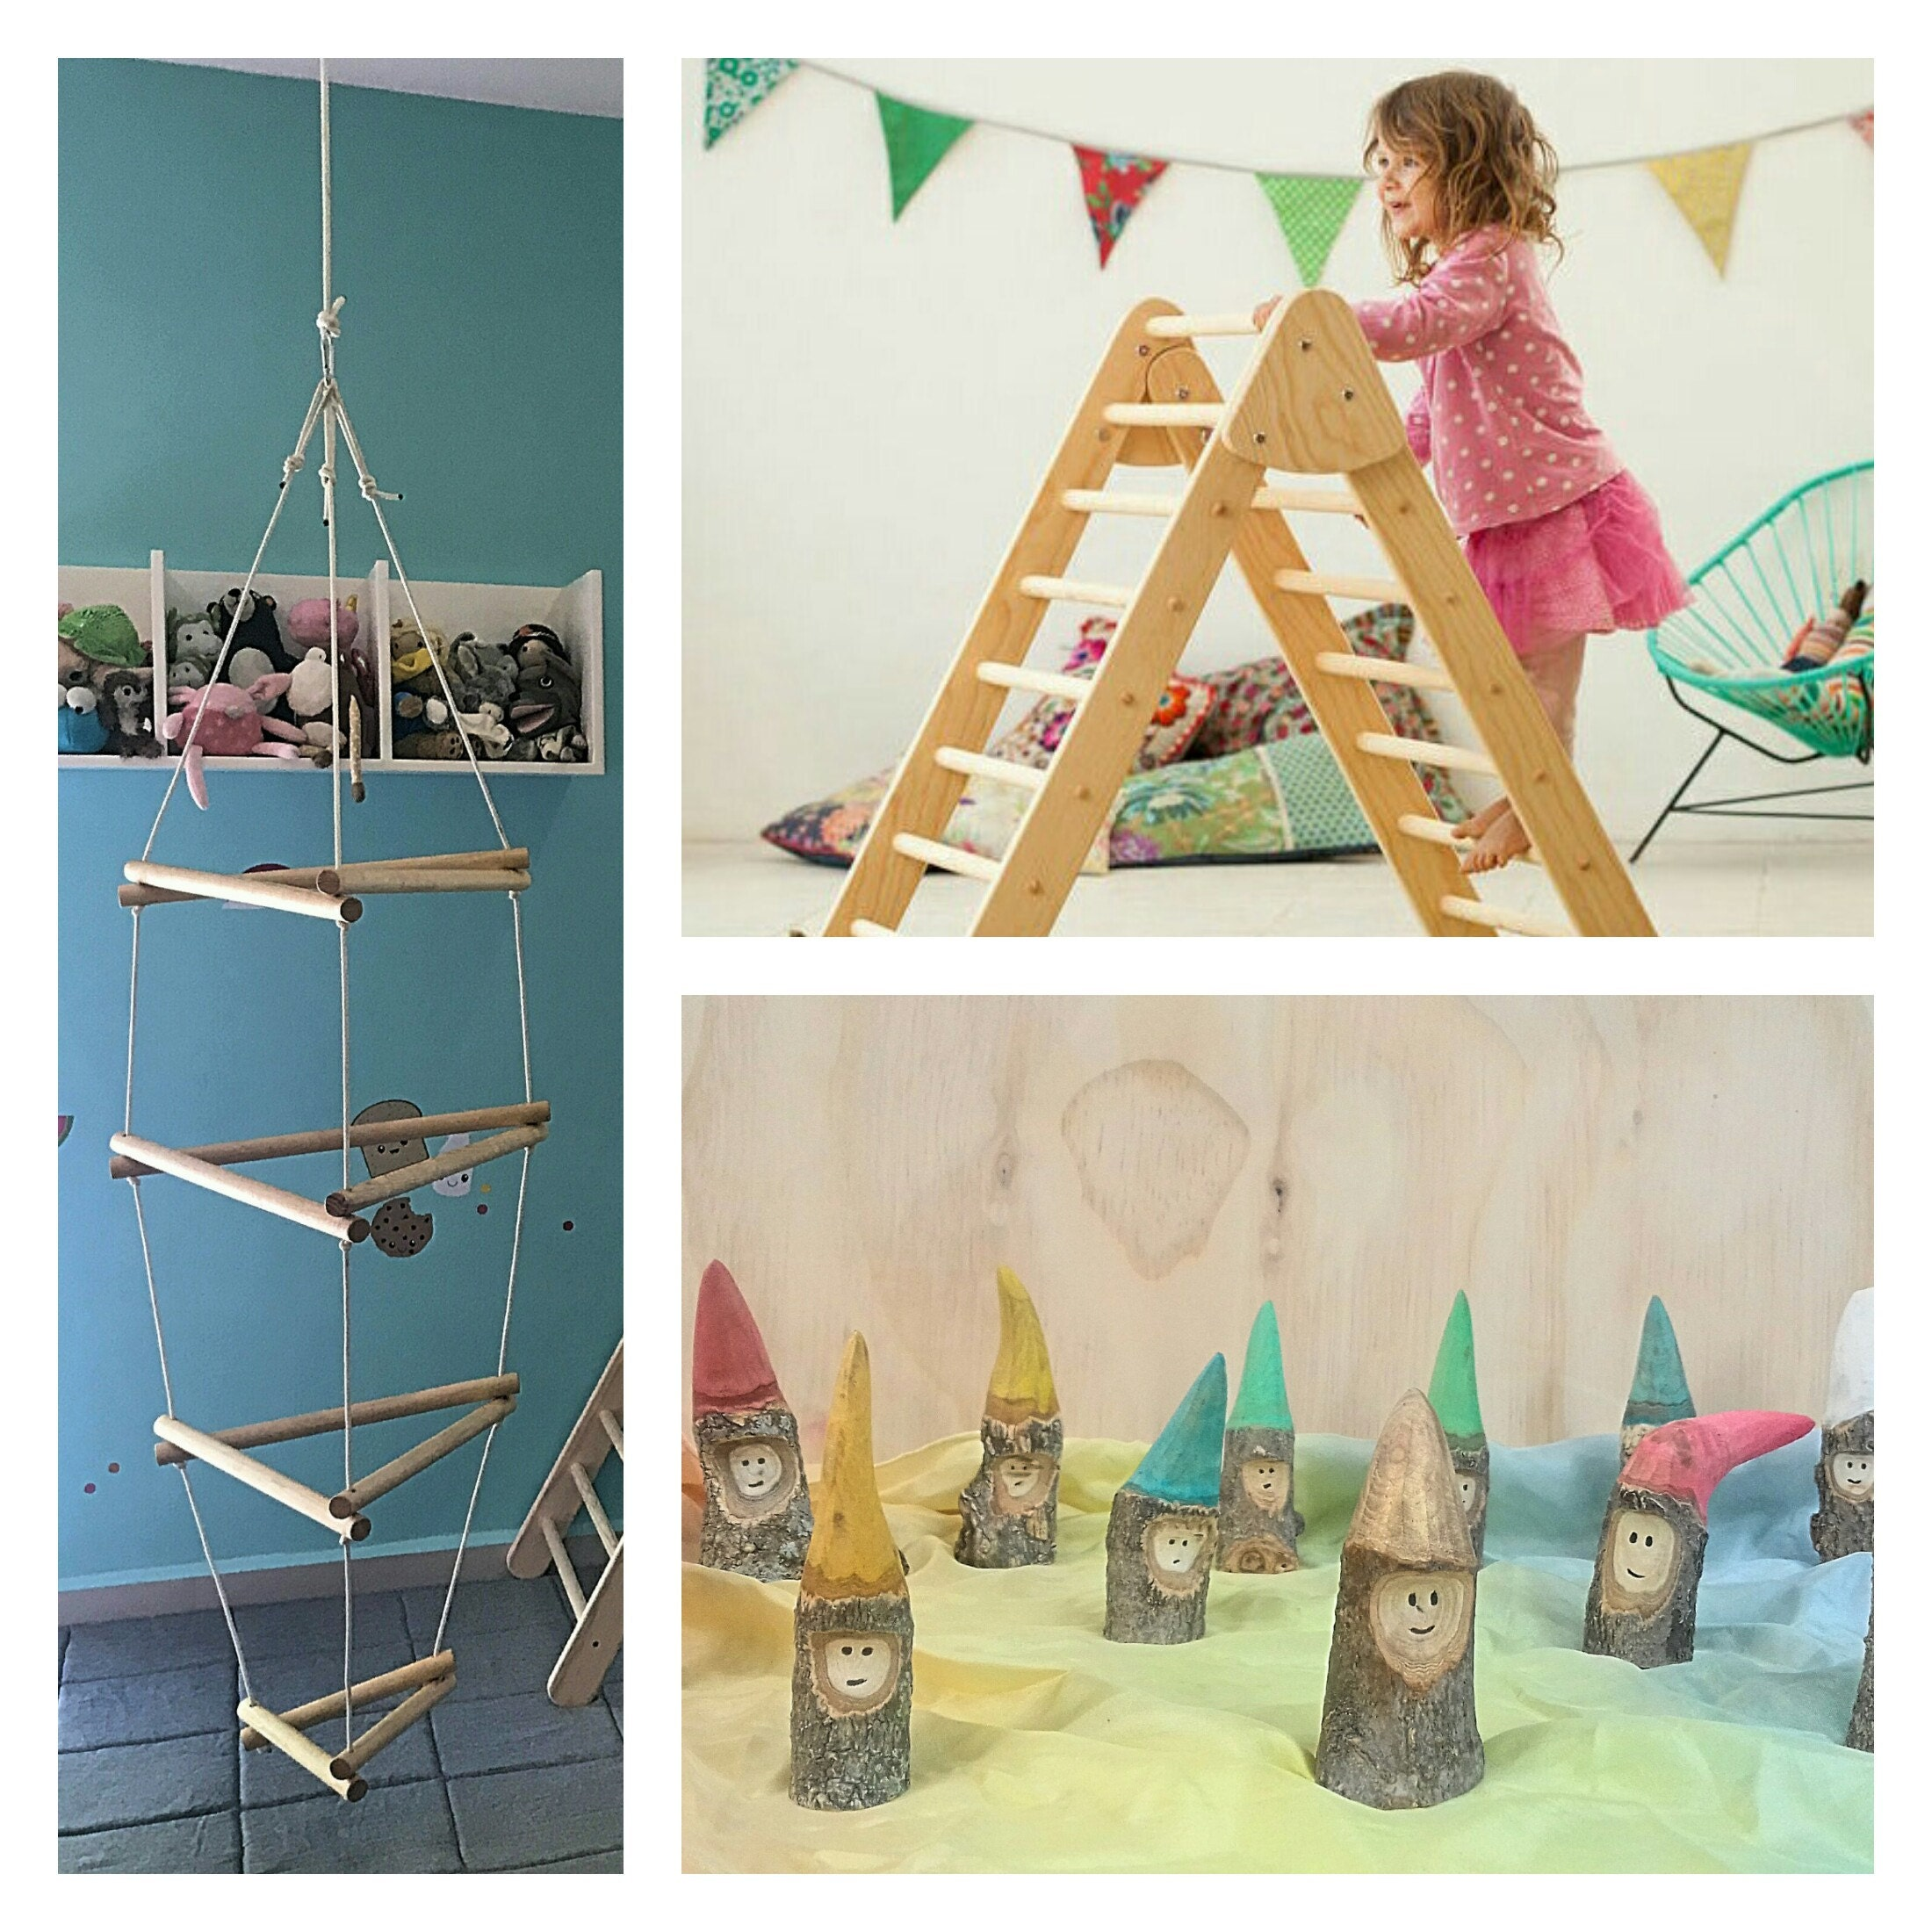 Wiwiurka Wood play structures and toys for active play por Wiwiurka